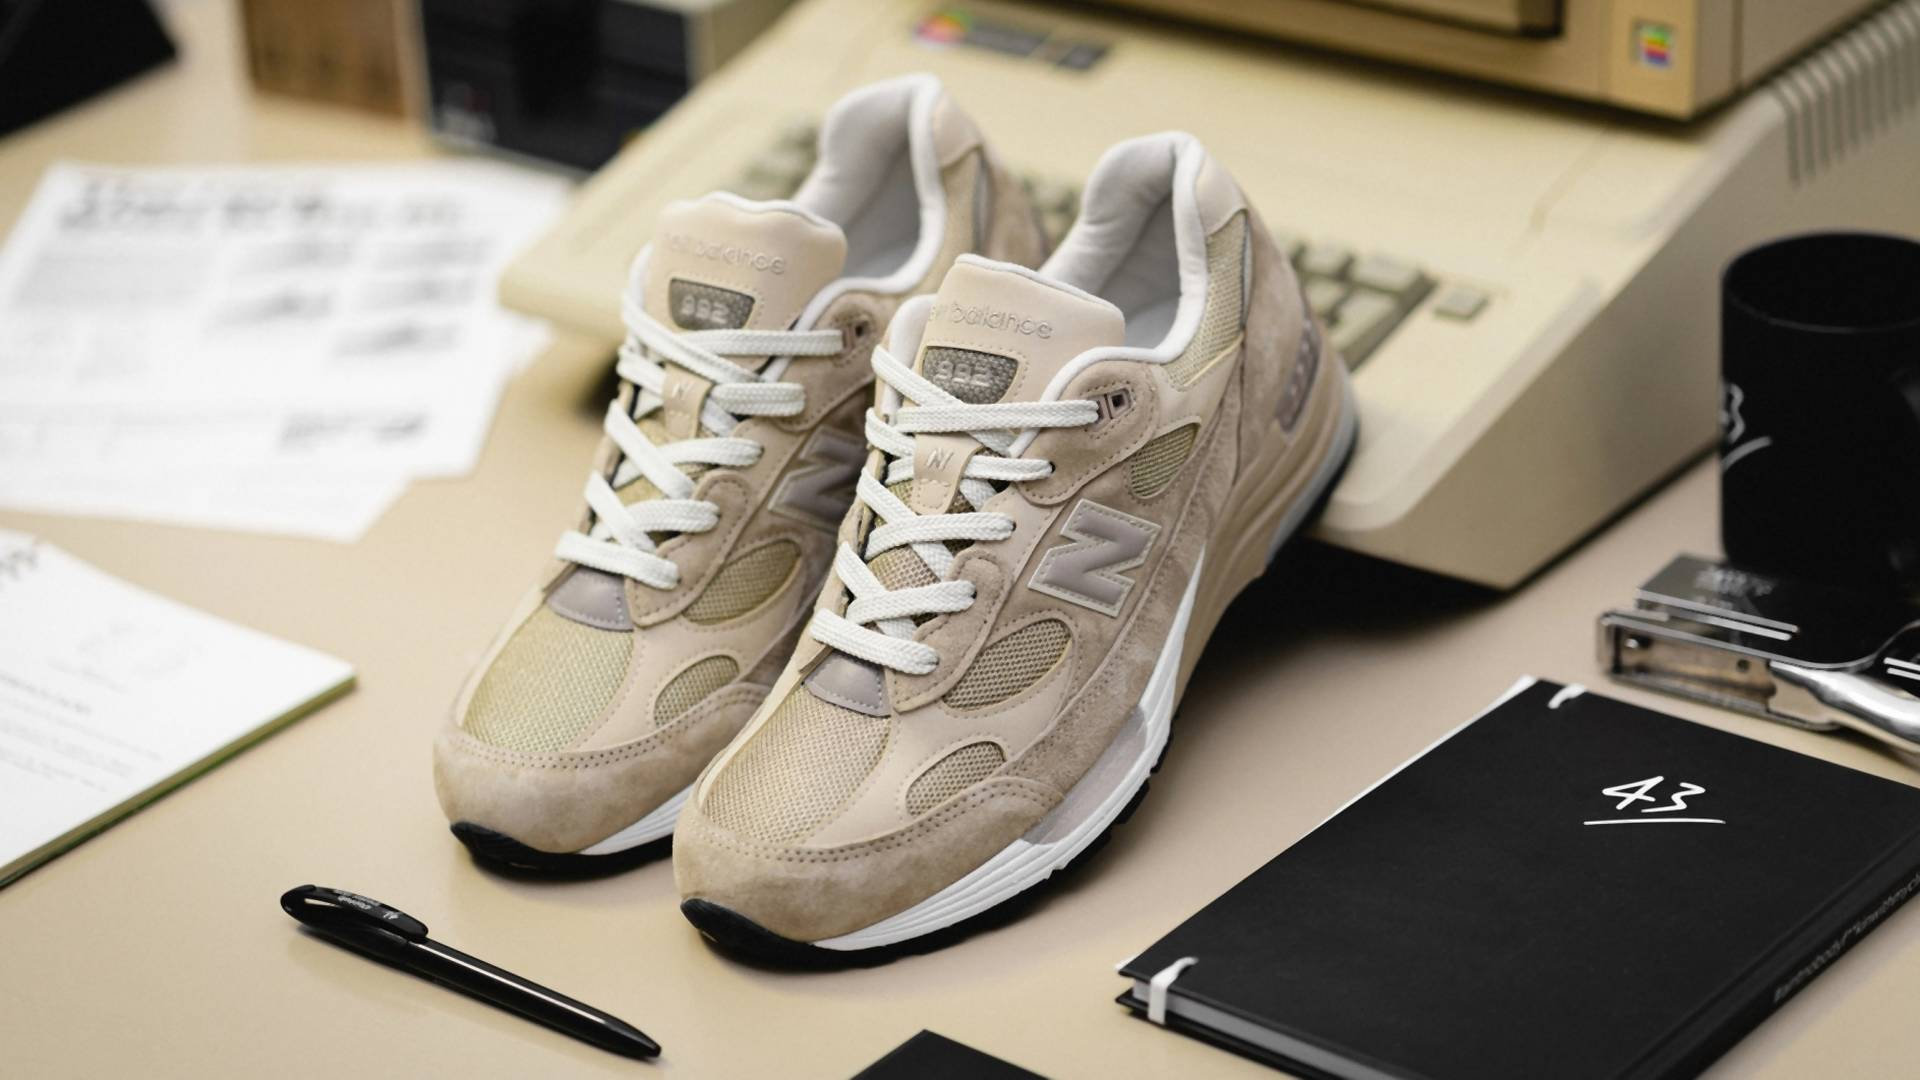 NOIZZ patika: New Balance 992, model koji je obožavao Steve Jobs